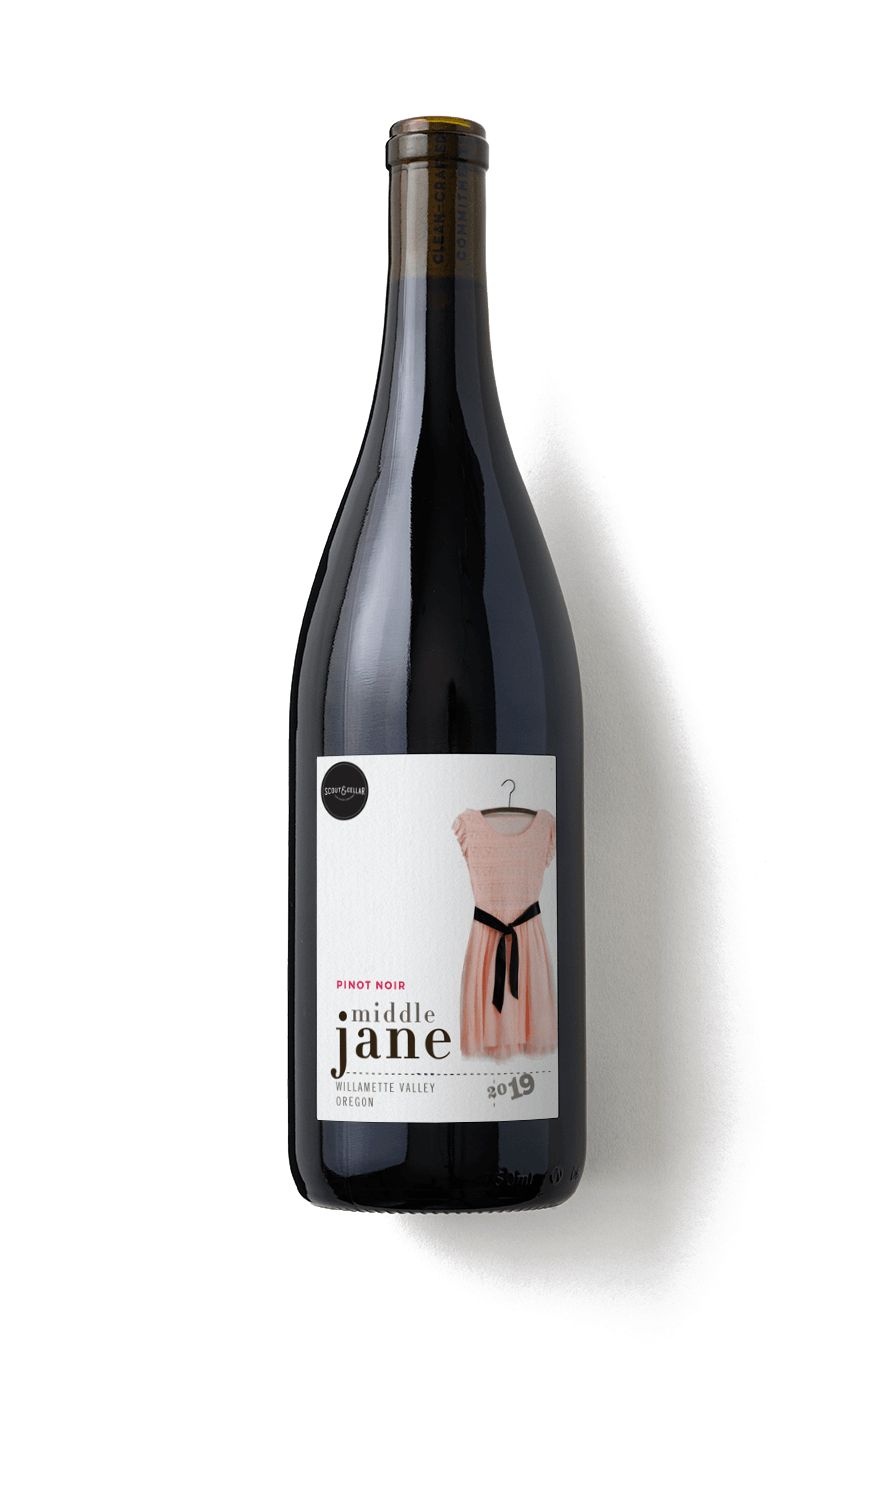 2019 MIDDLE JANE PINOT NOIR